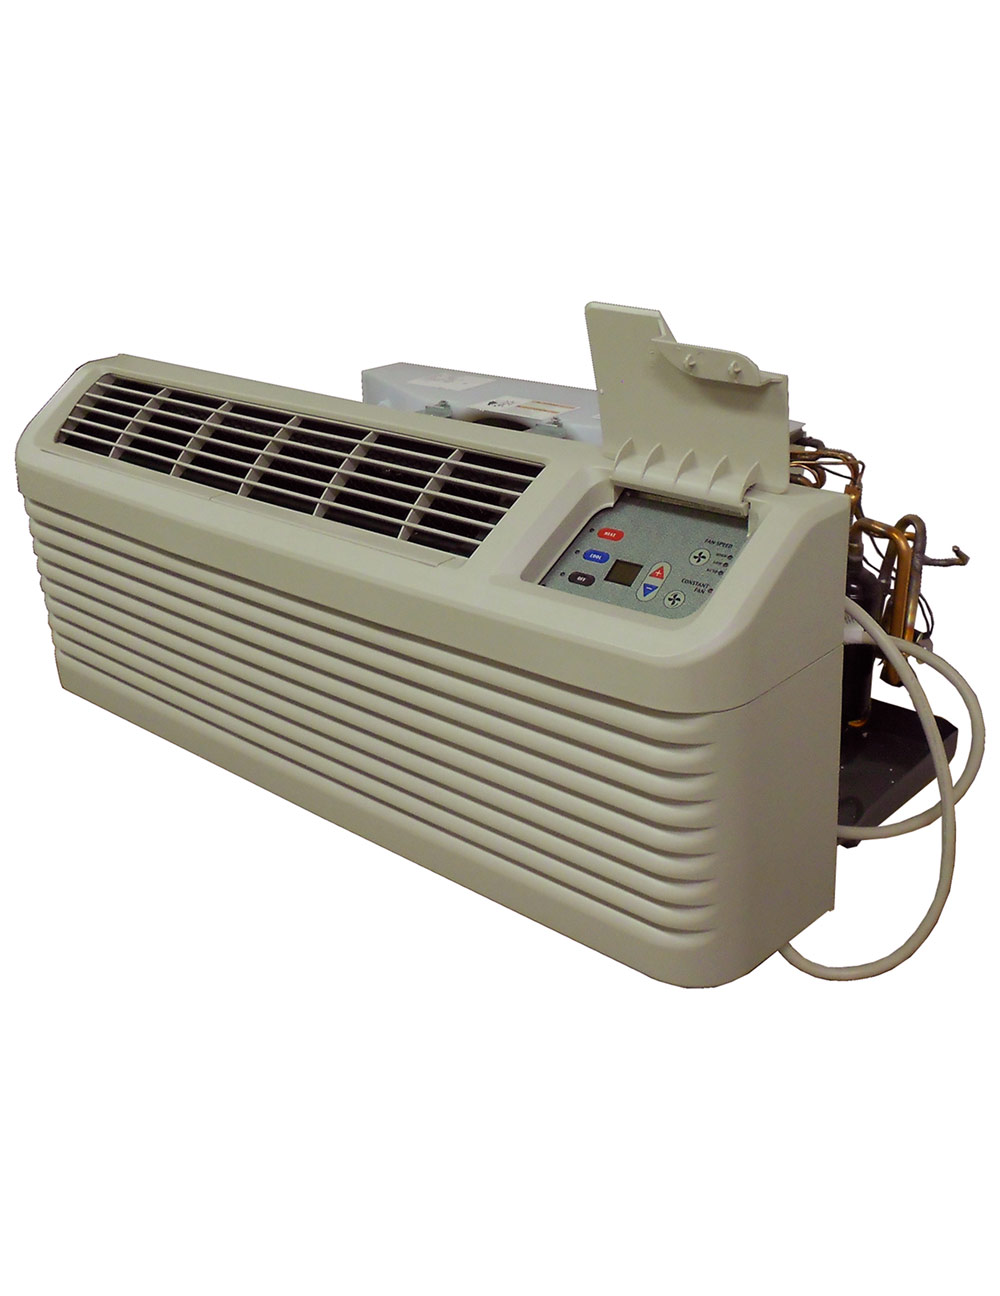 Amana® 42″ PTAC Heating & Cooling Units – Hamilton Home Products